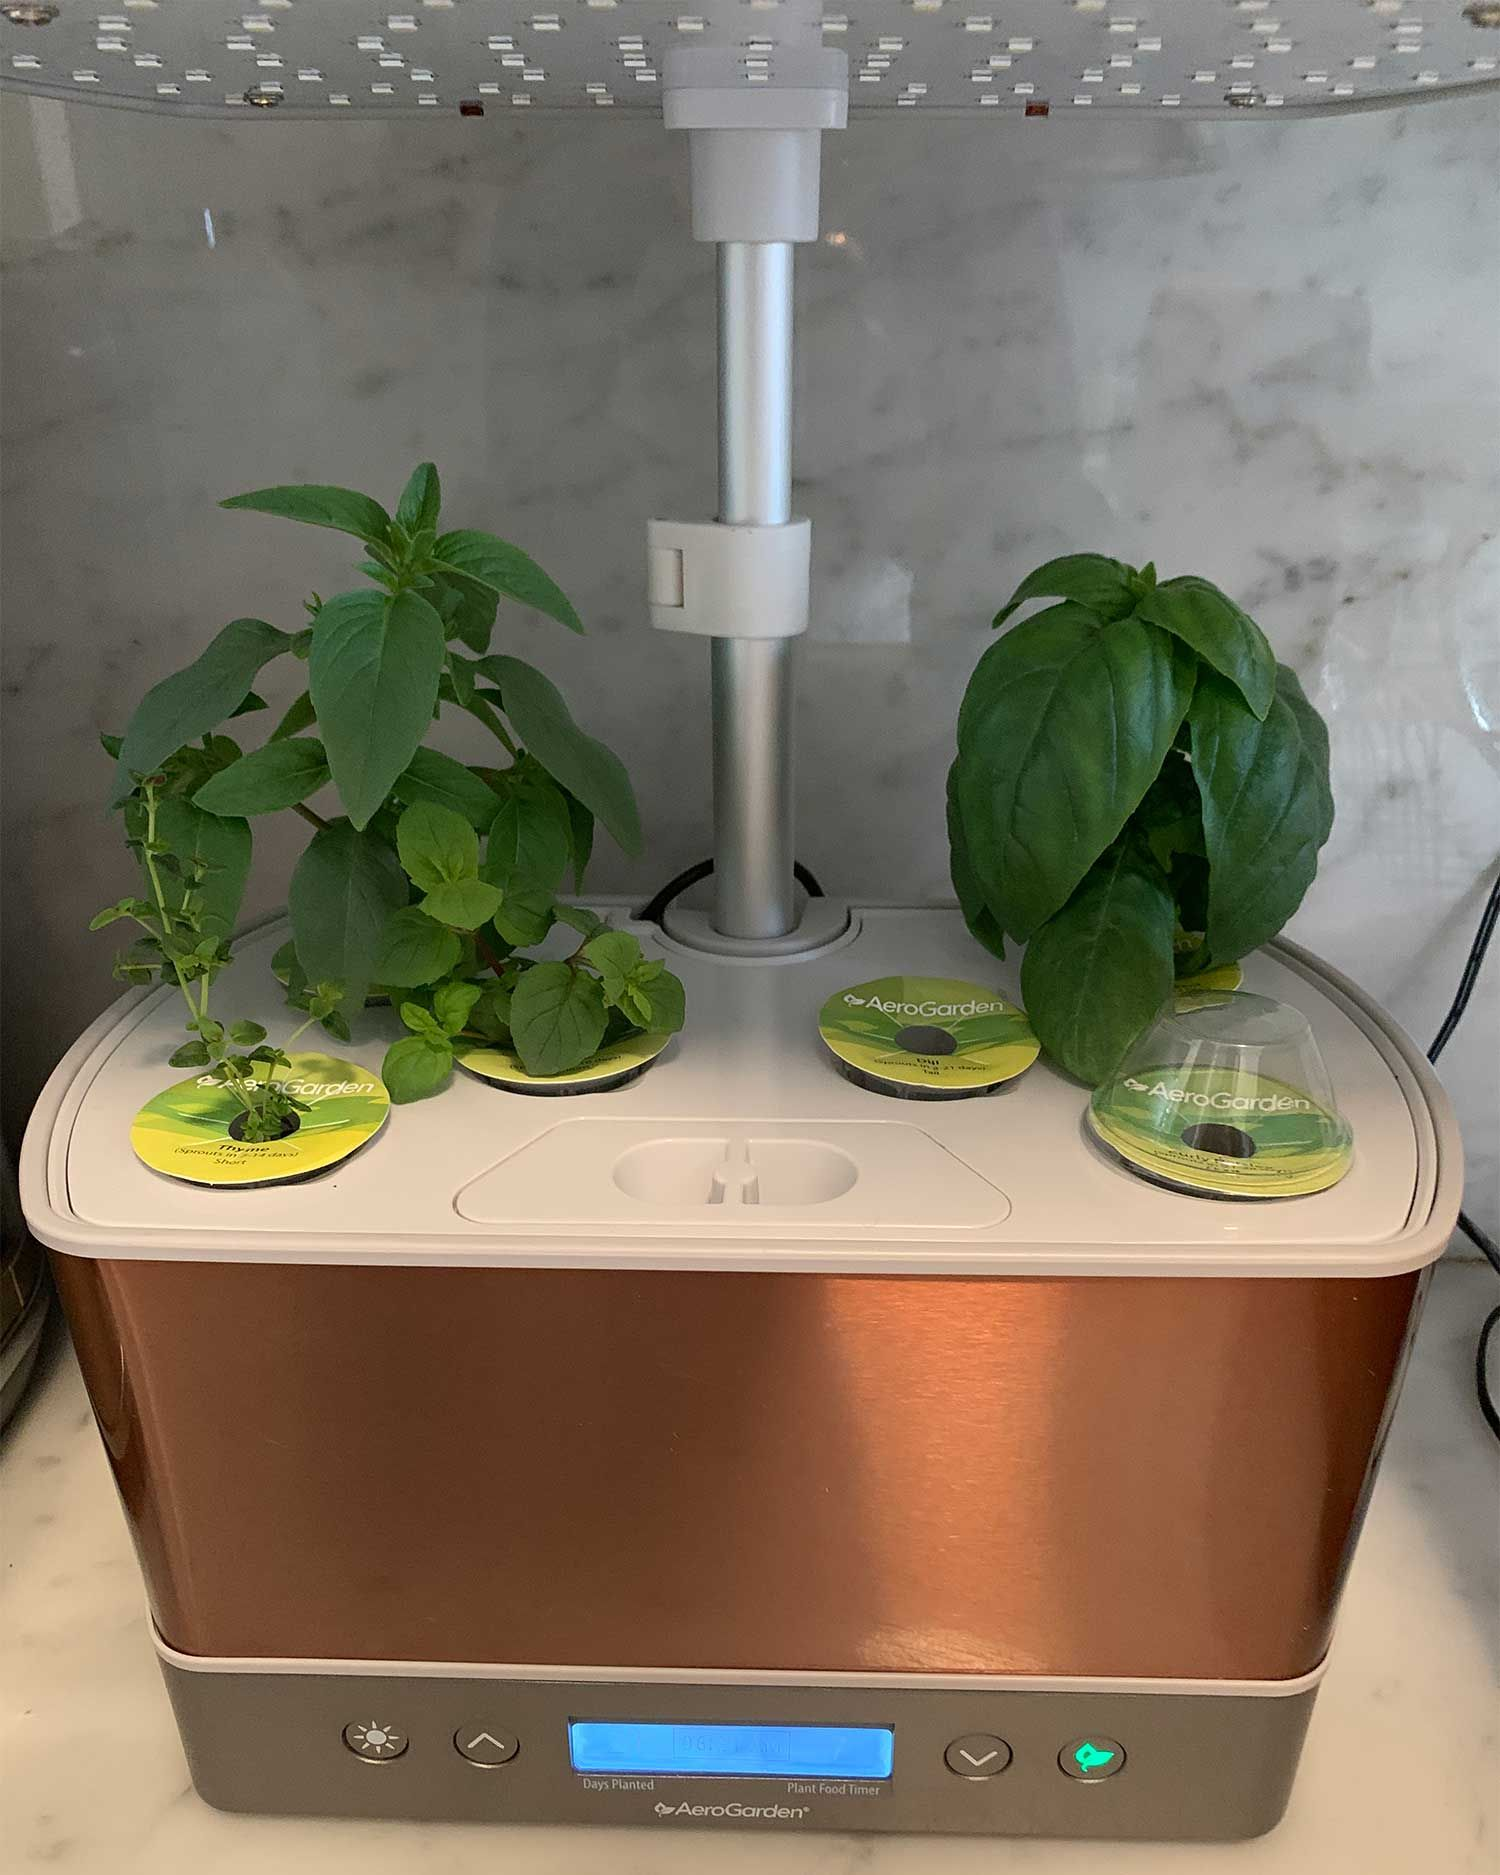 AeroGarden Harvest Review From Setup to Herbs in 1 Month